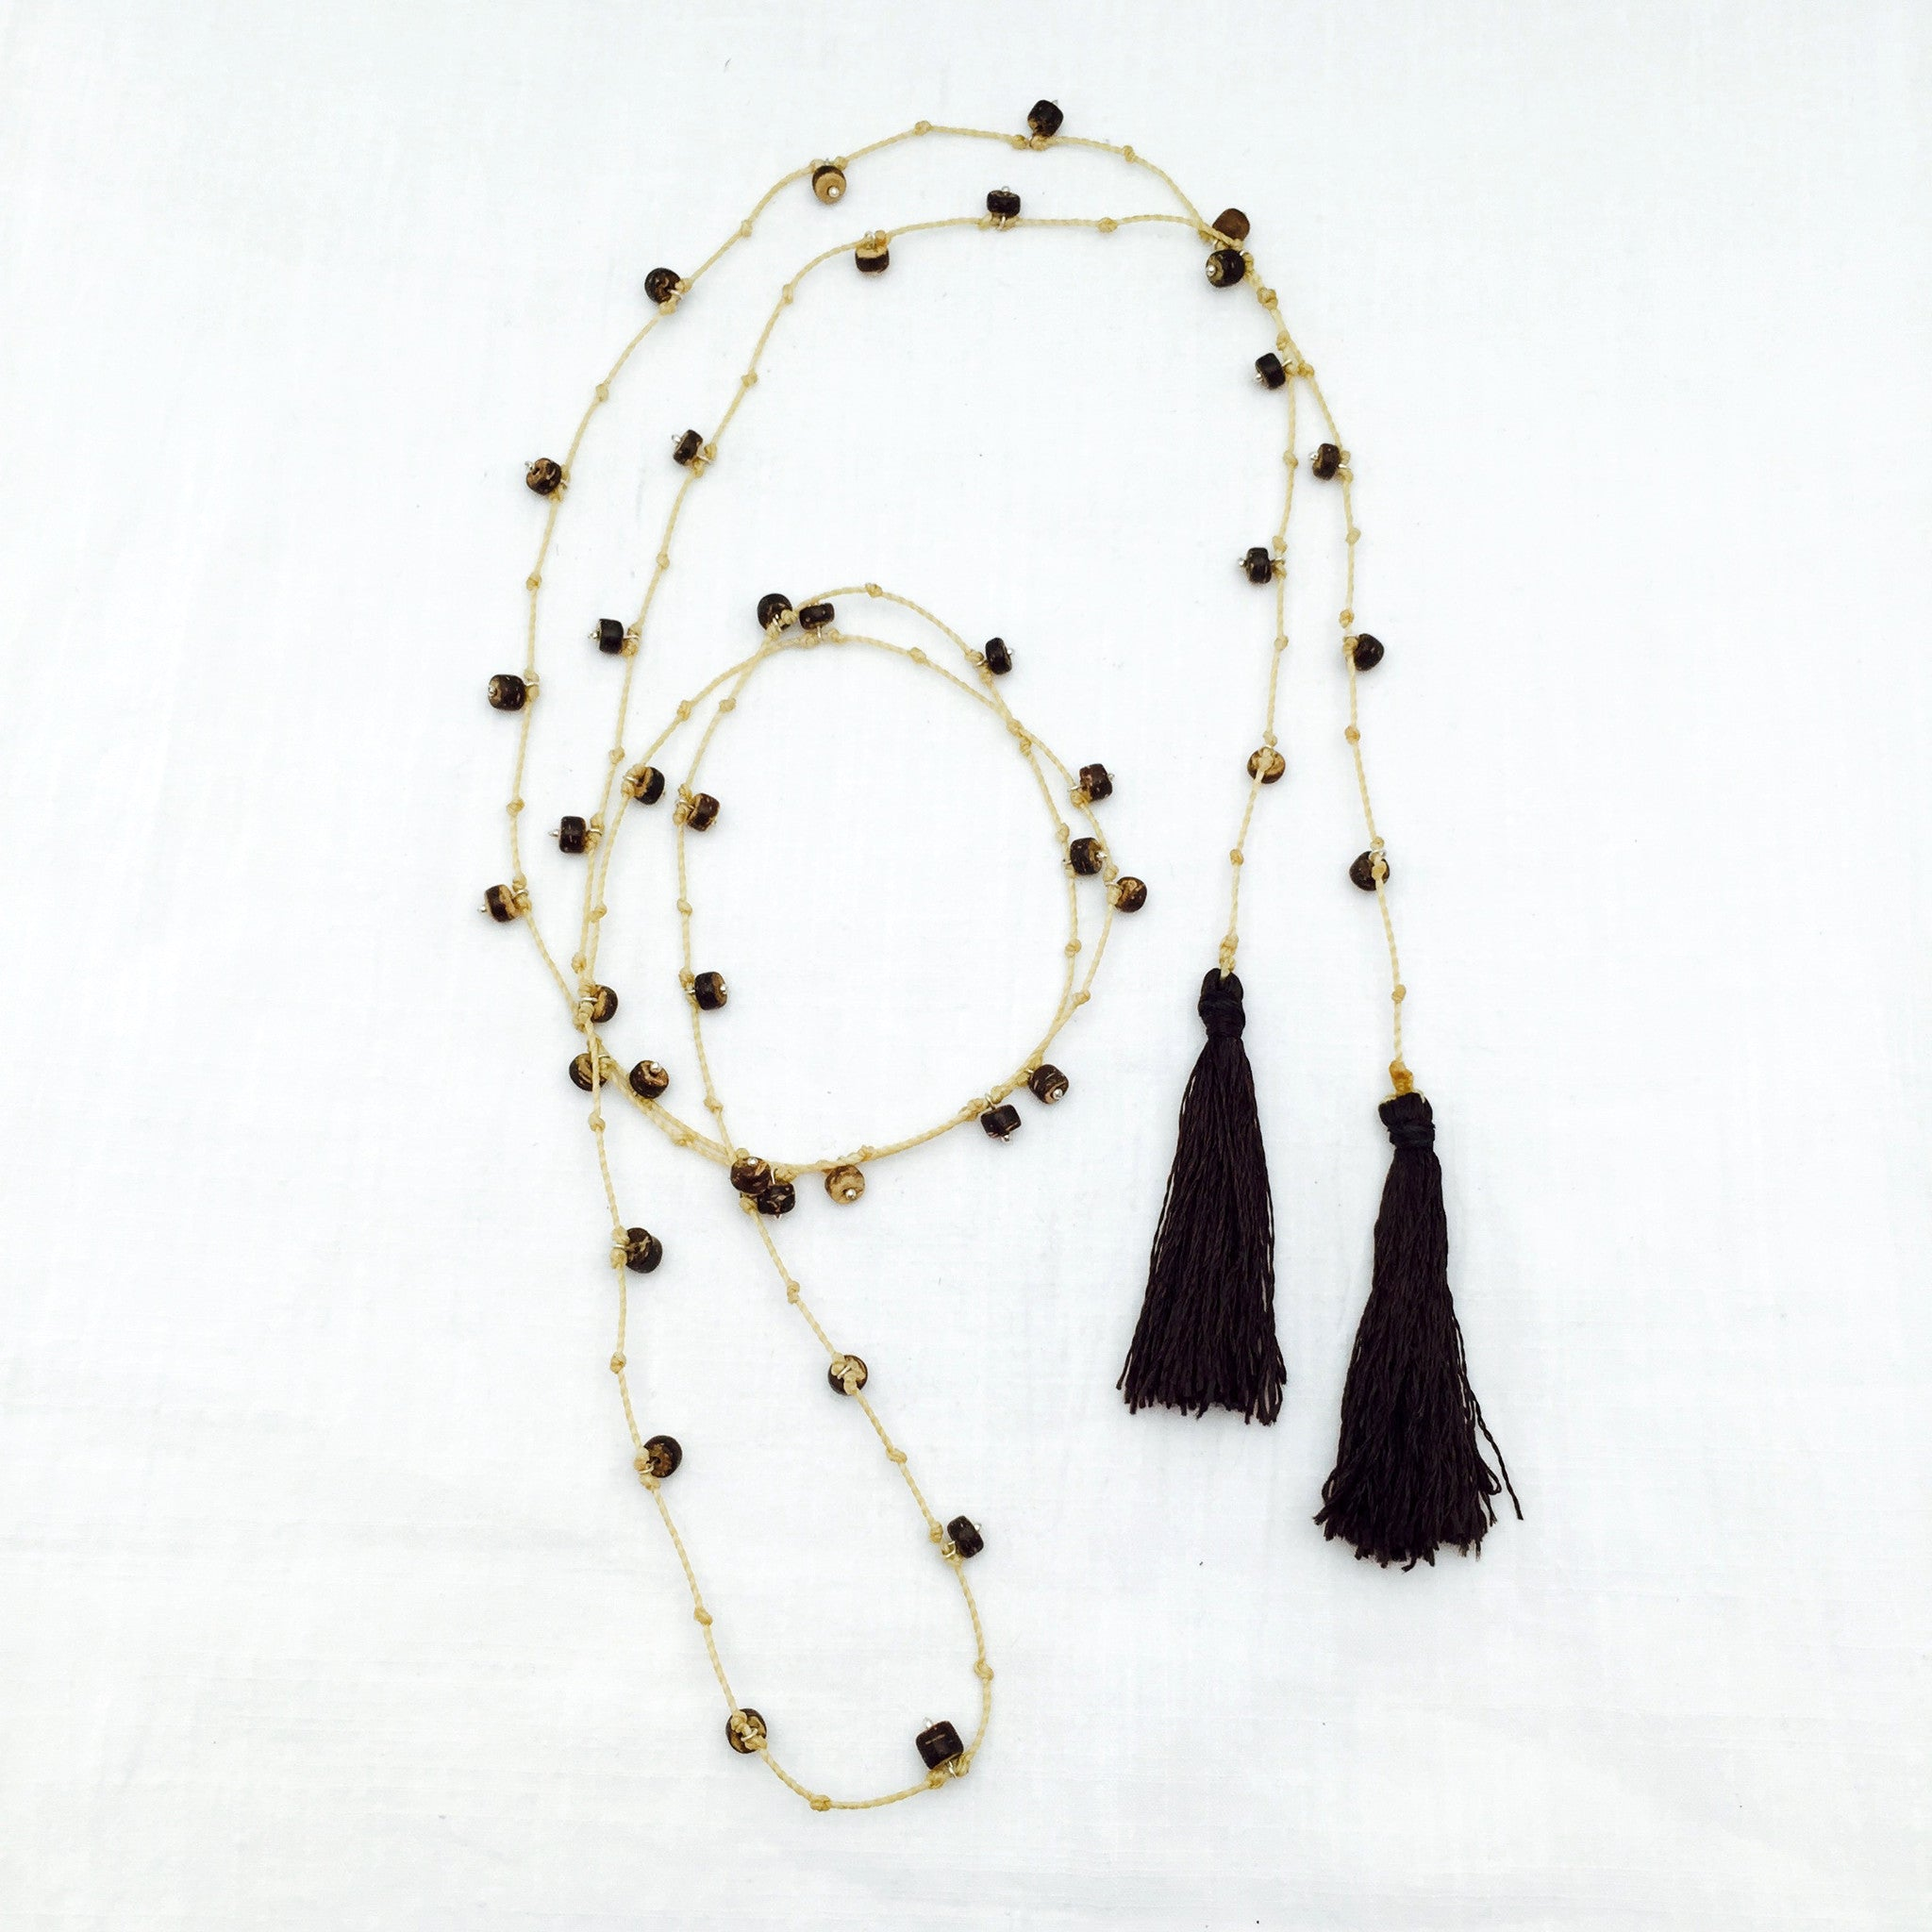 Puerto Vallarta coconut shell lariat necklace